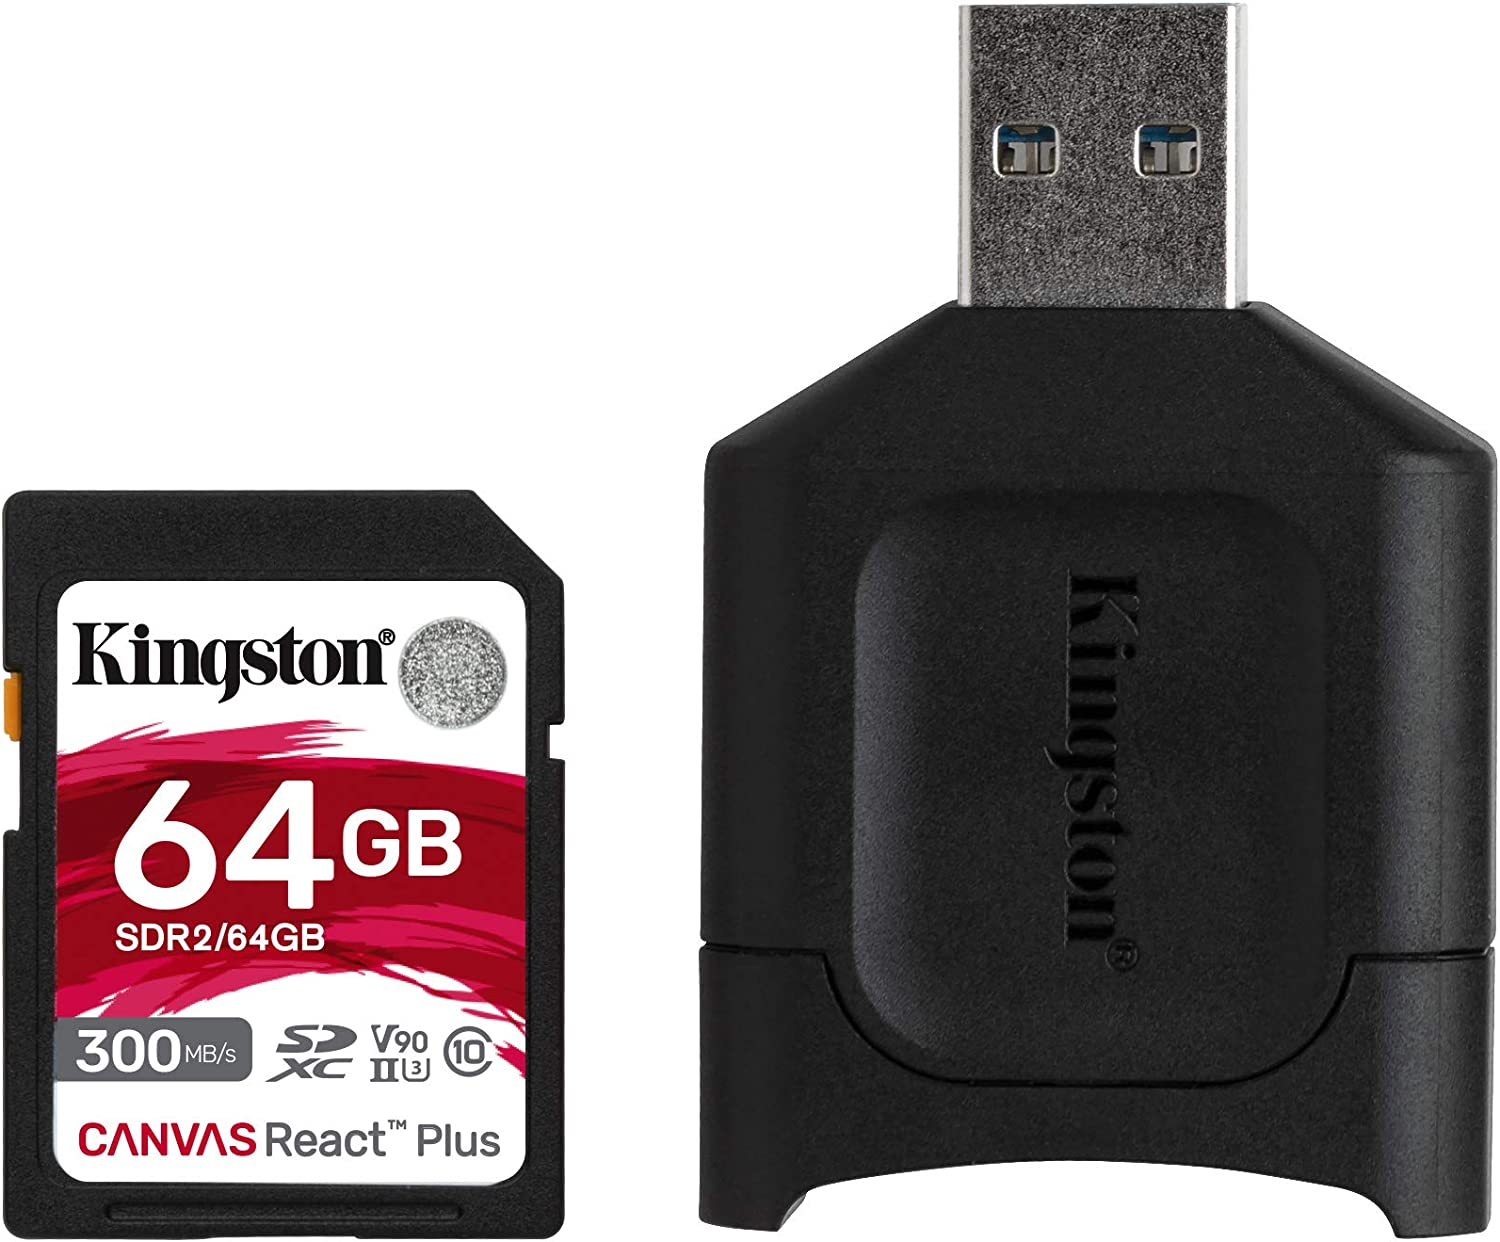 SanFlash Kingston 64GB React MicroSDXC for Huawei Ascend Mate with SD Adapter 100MBs Works with Kingston